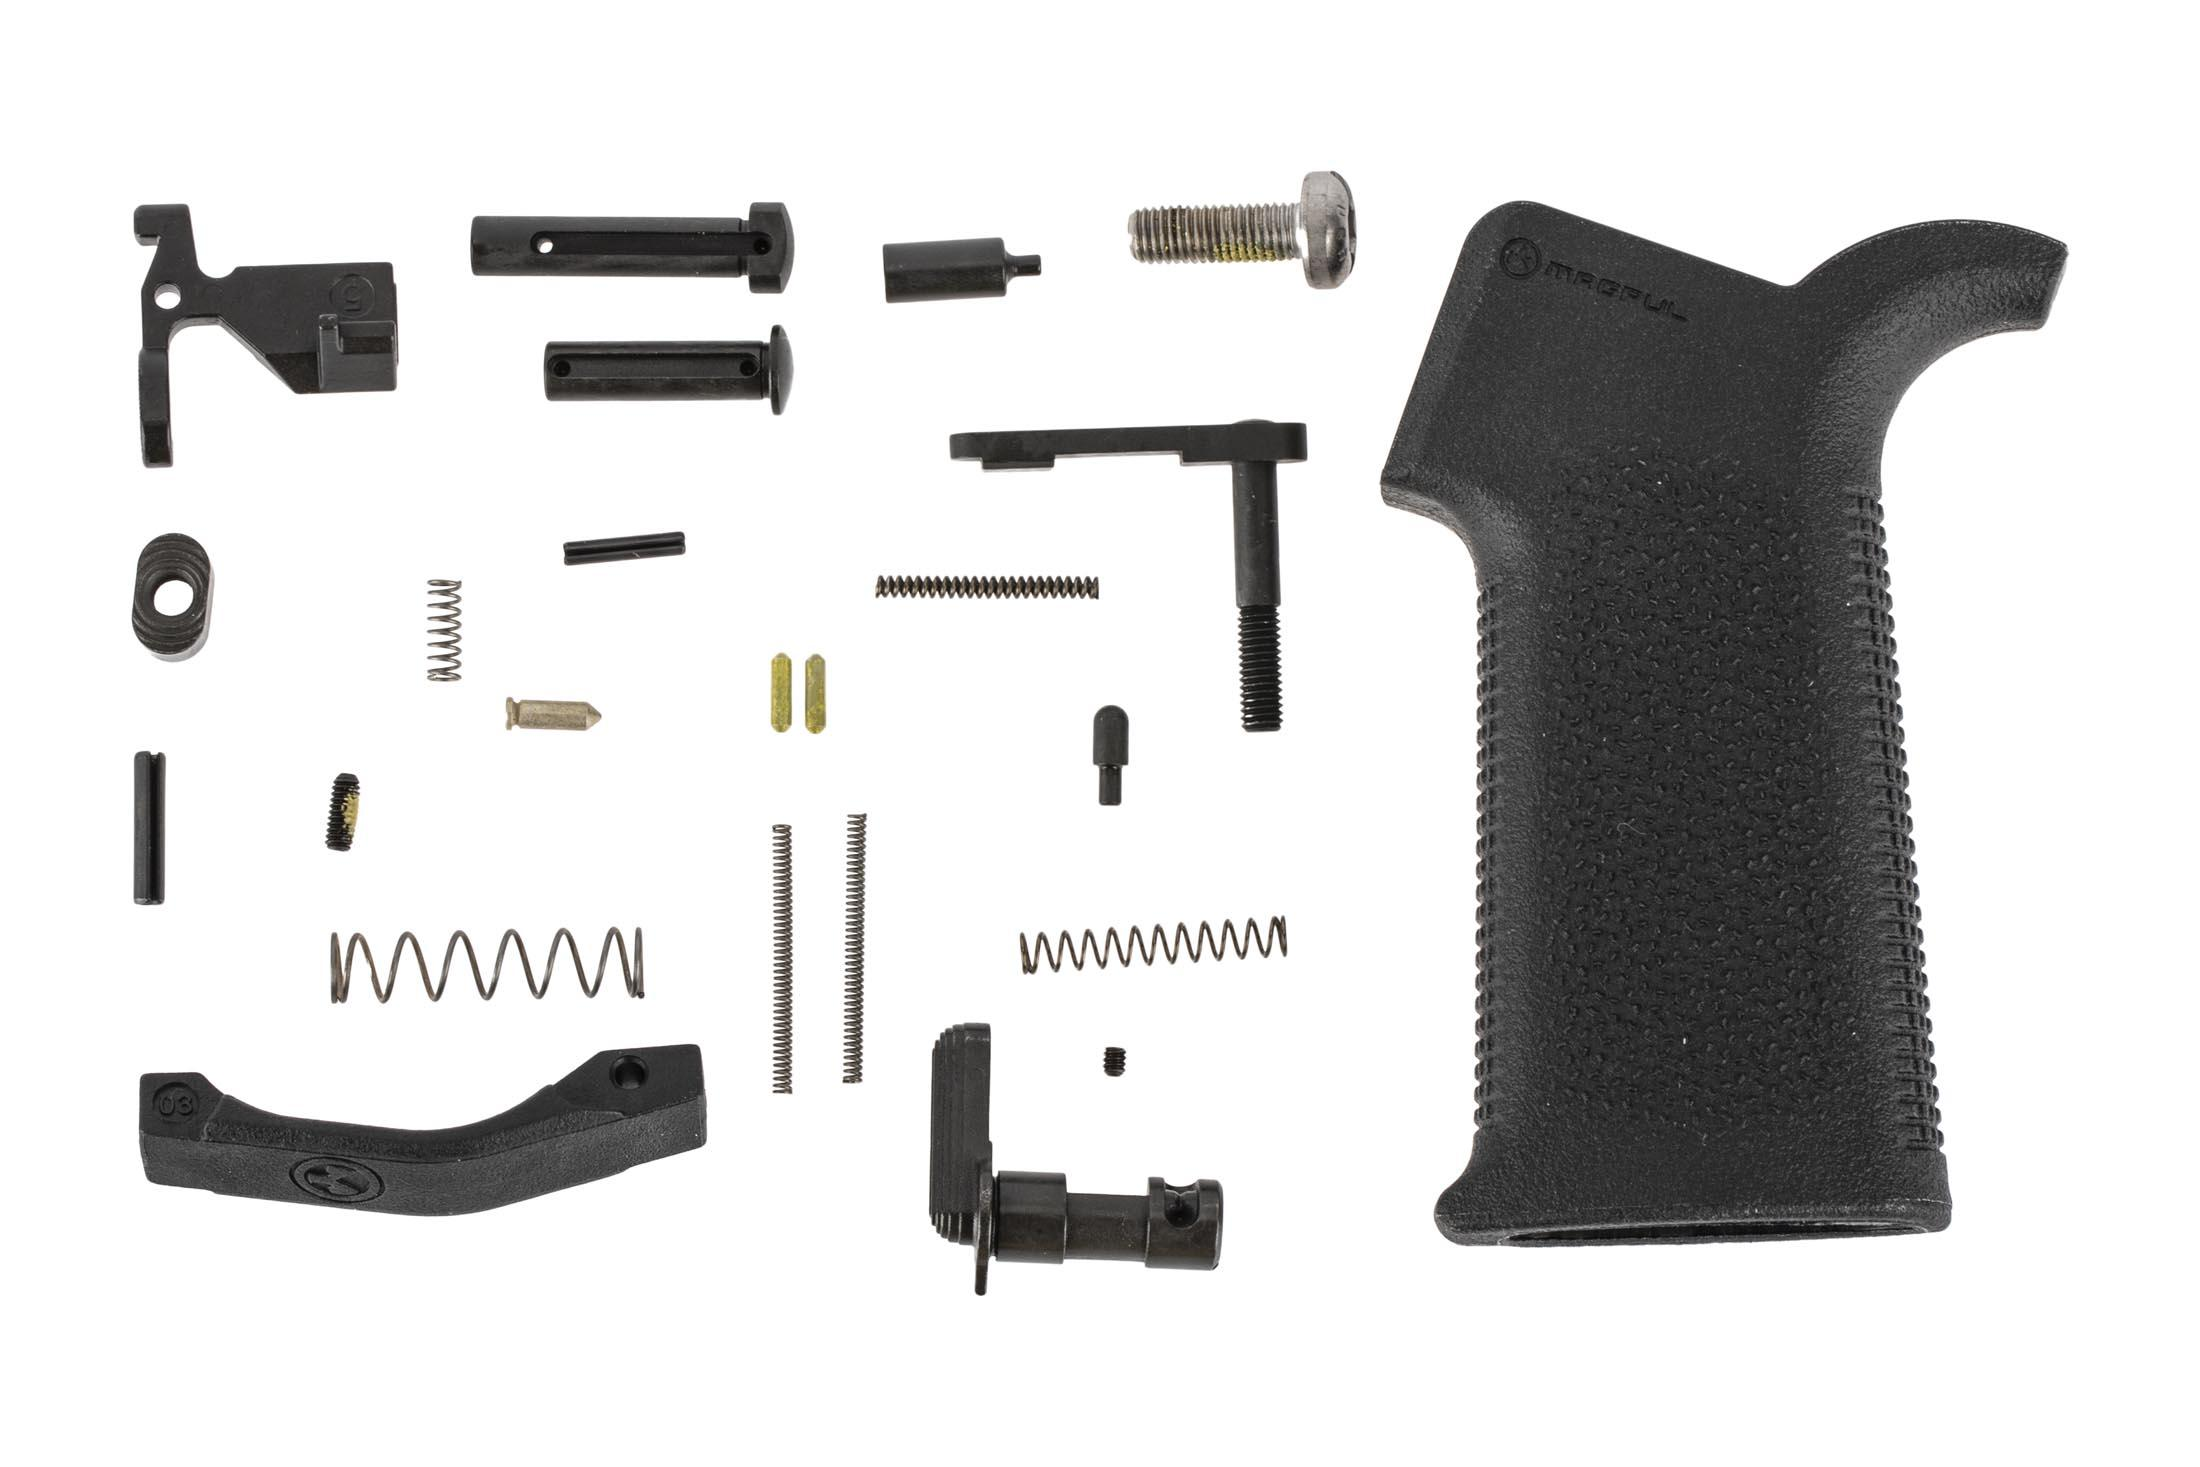 Aero Precision AR-15 MOE lower parts kit without trigger group featuers a Magpul MOE SL pistol grip and trigger guard in black.